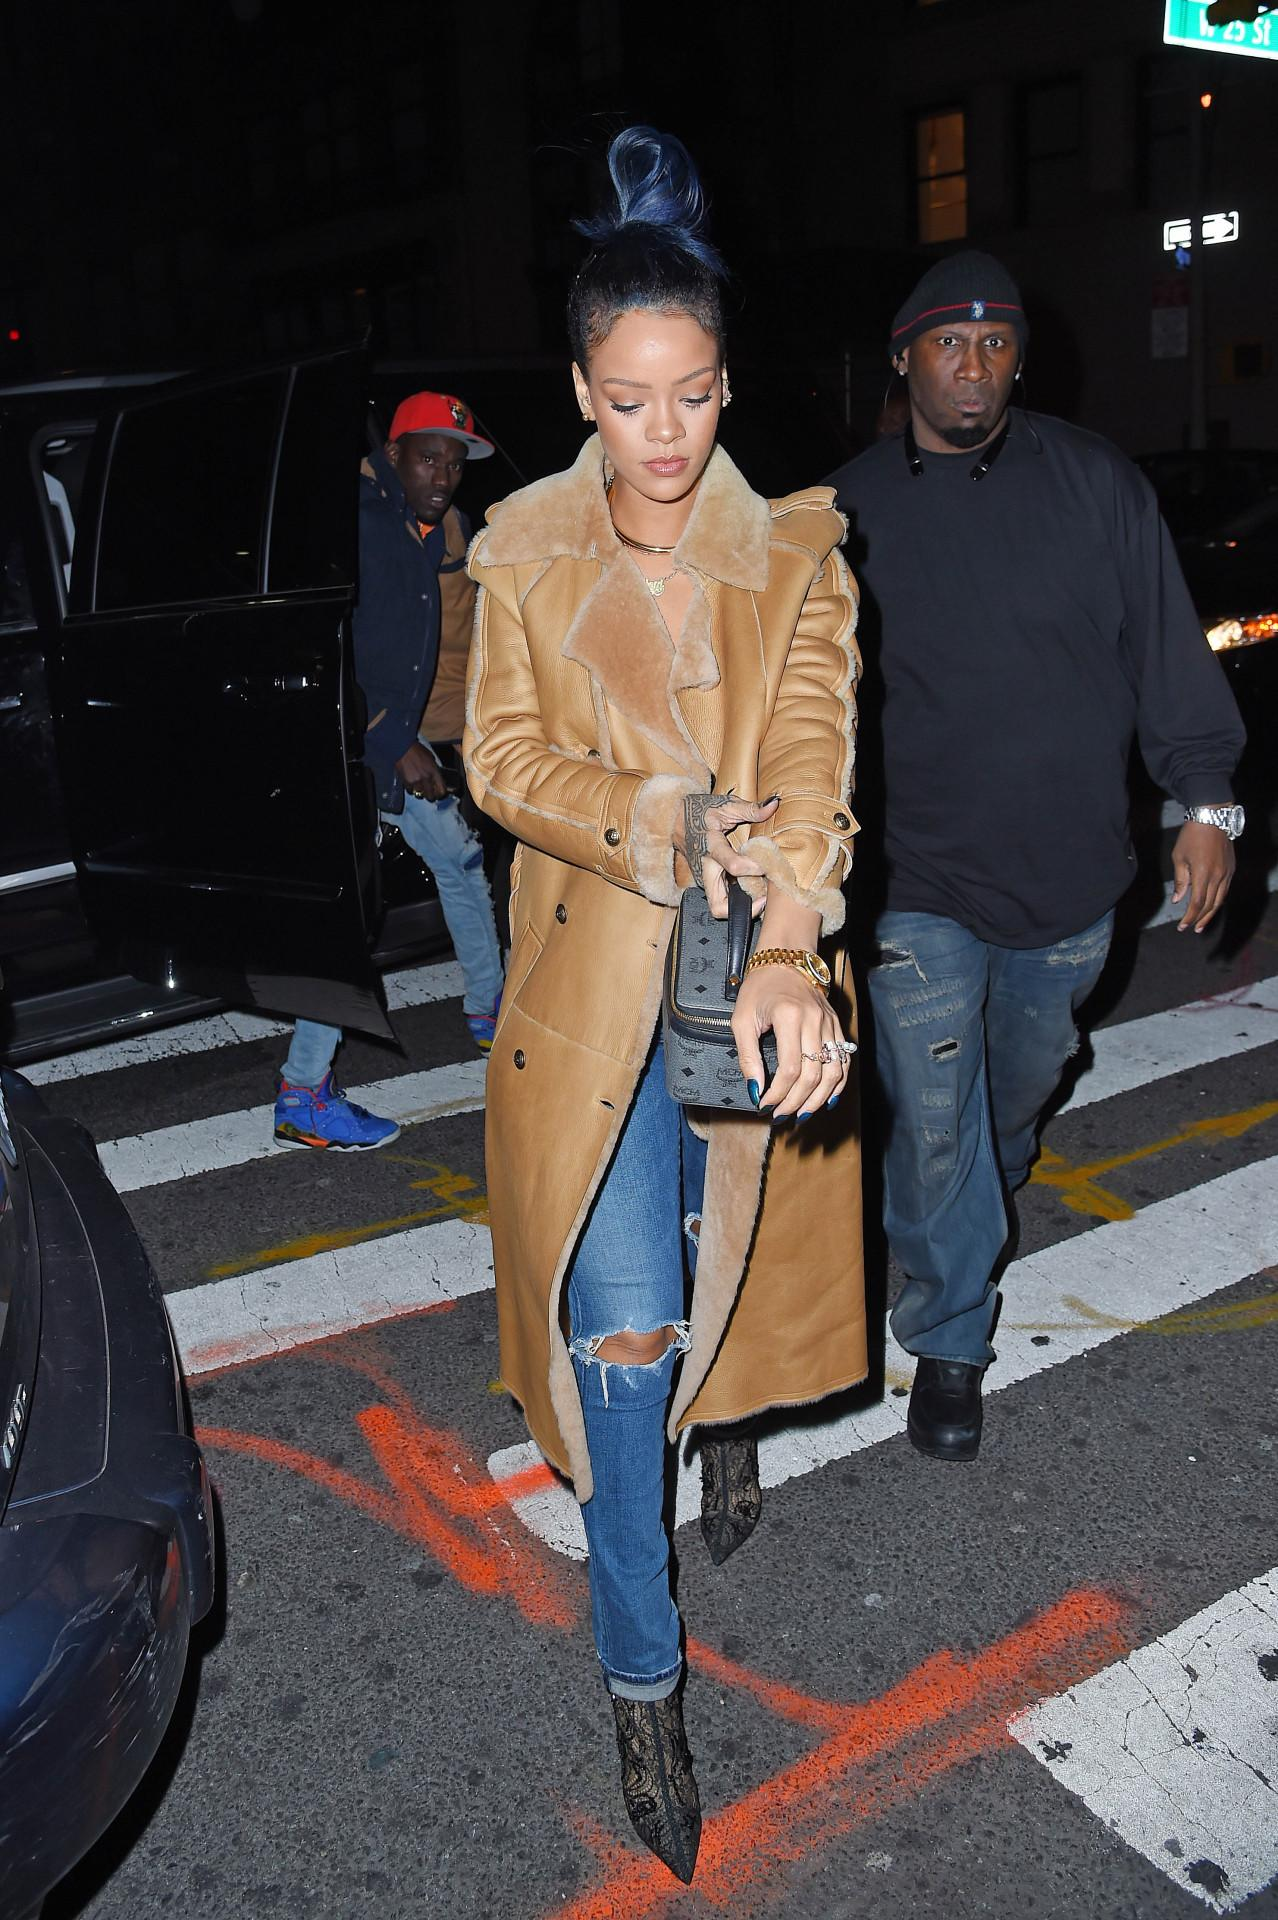 3 Chic Ways to Wear Shearling